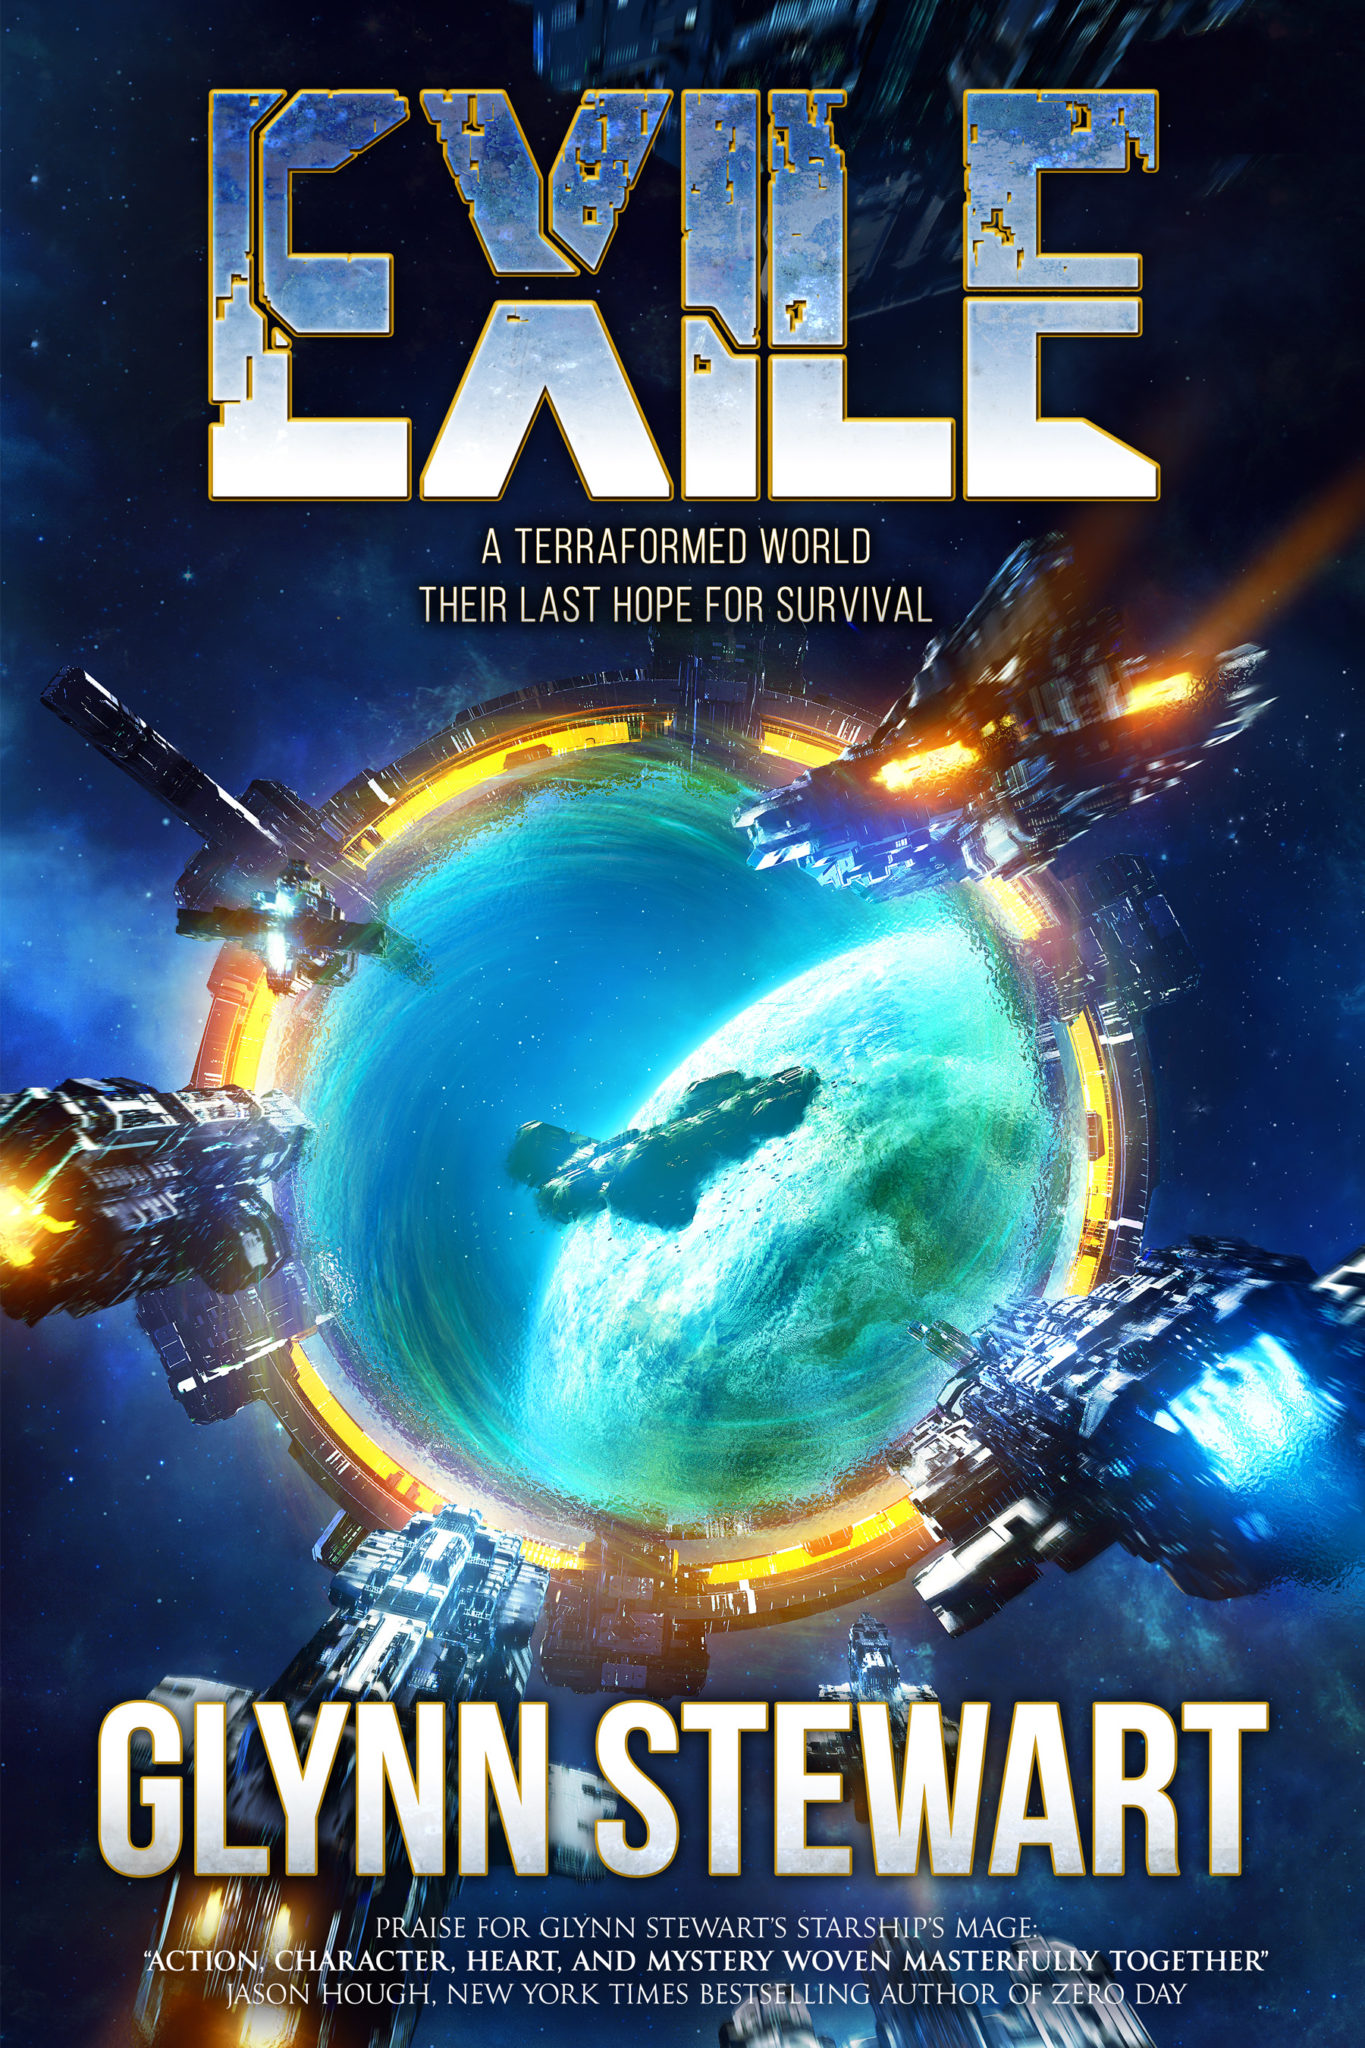 https://www.glynnstewart.com/wp-content/uploads/2018/03/Exile-by-Glynn-Stewart-Space-Opera-Novel-Cover-Nov-2017.jpg